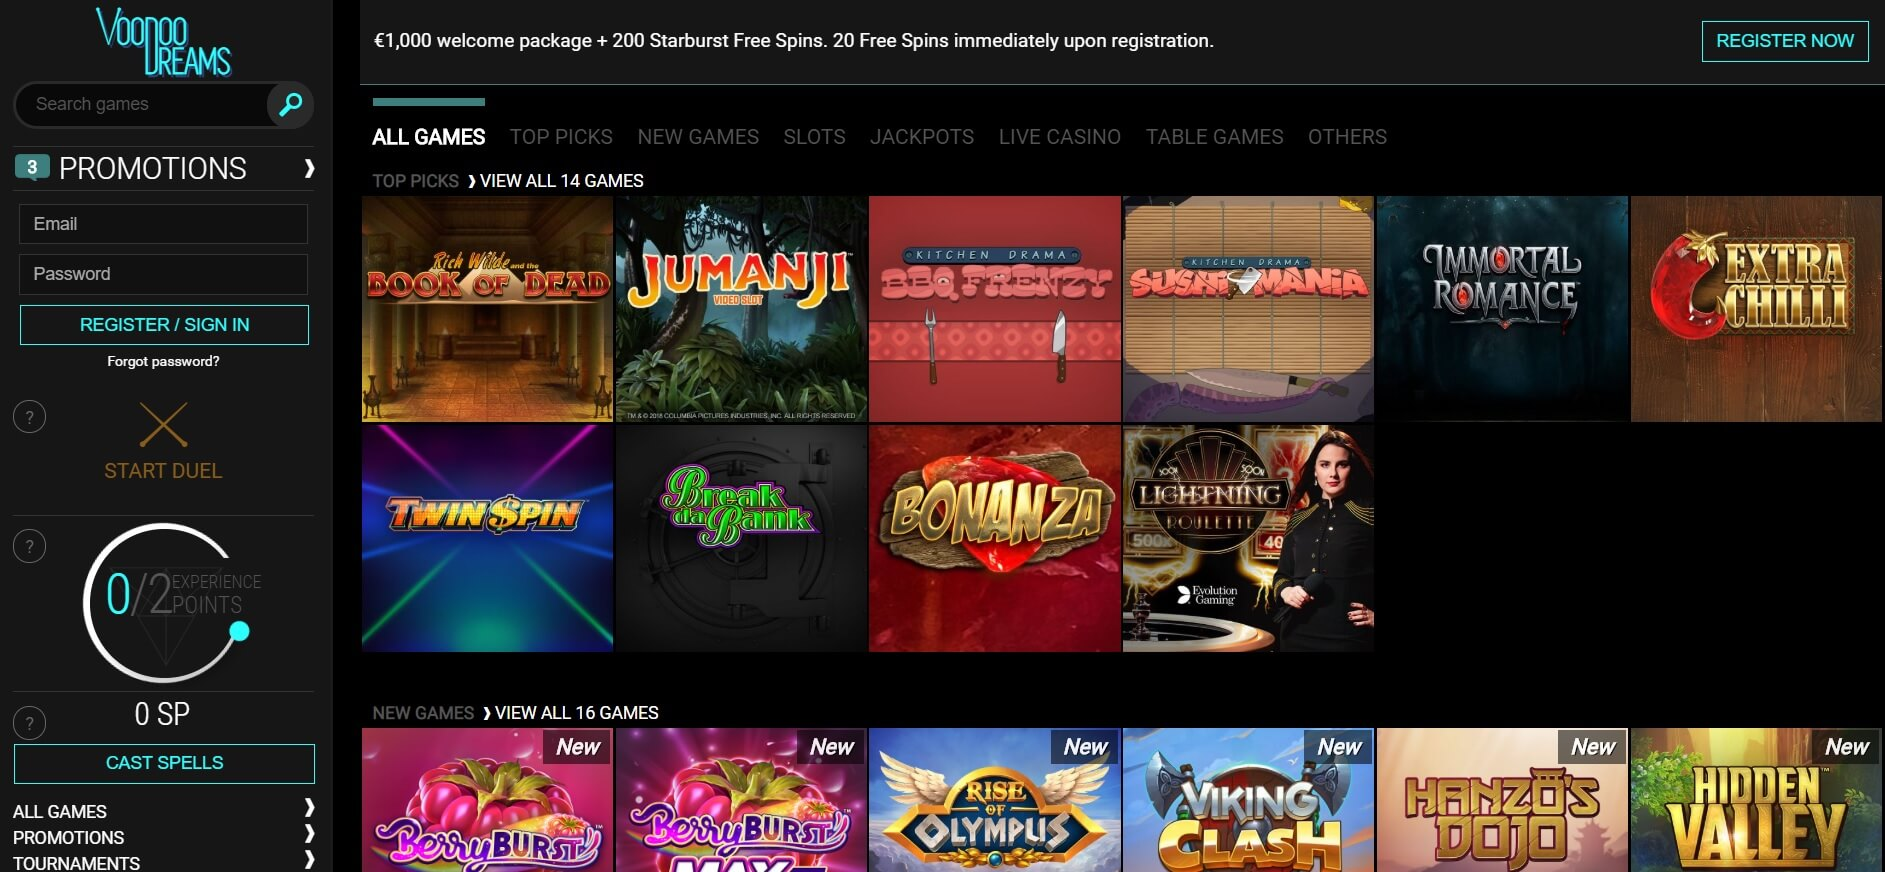 Voodoo dreams a slot site